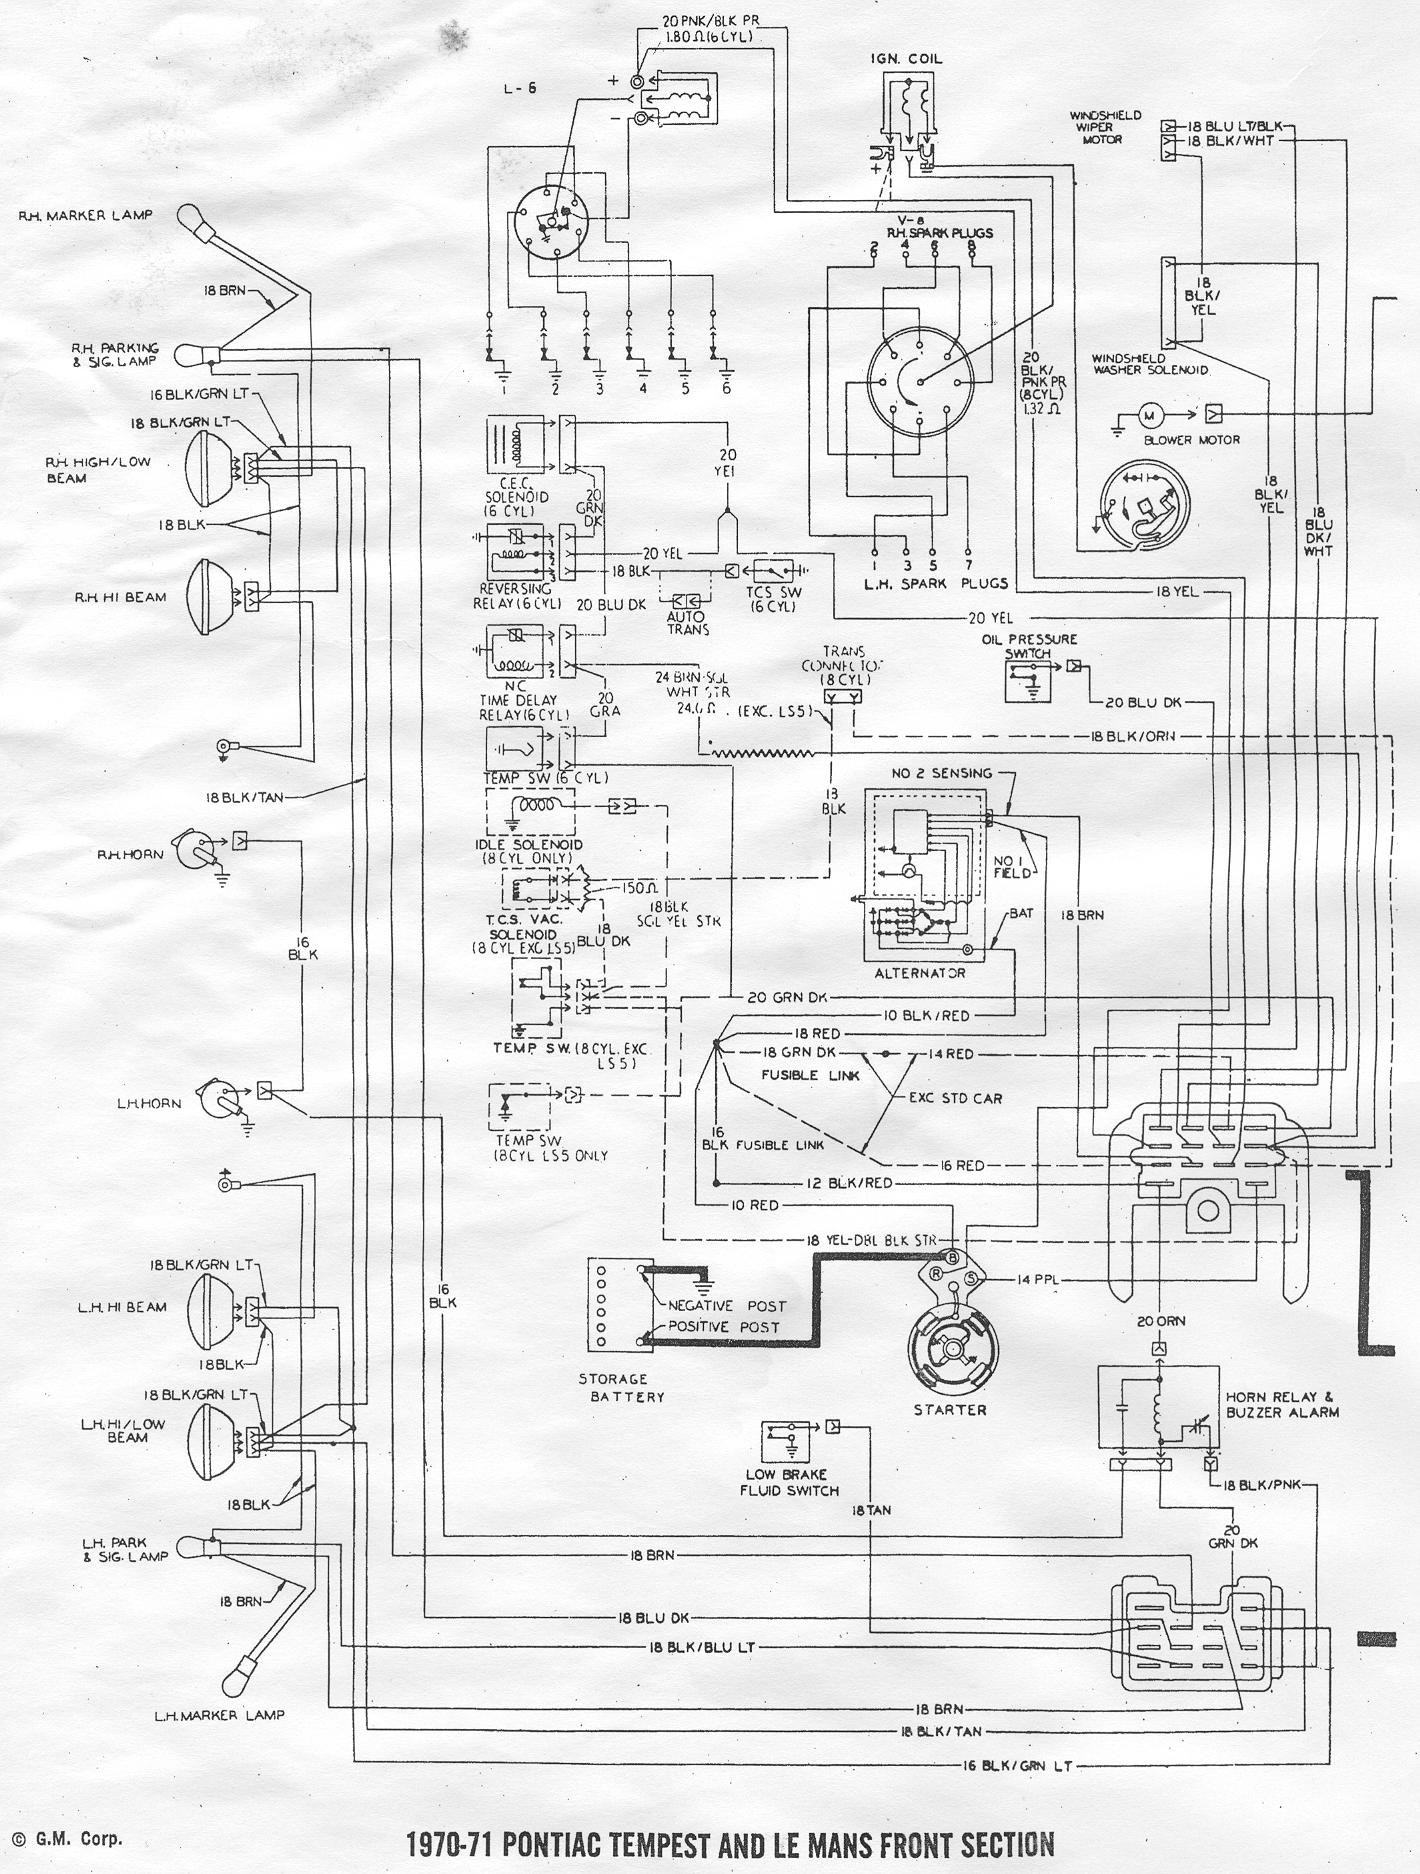 65 Pontiac Gto Wiring Diagrams | Wiring Schematic Diagram on